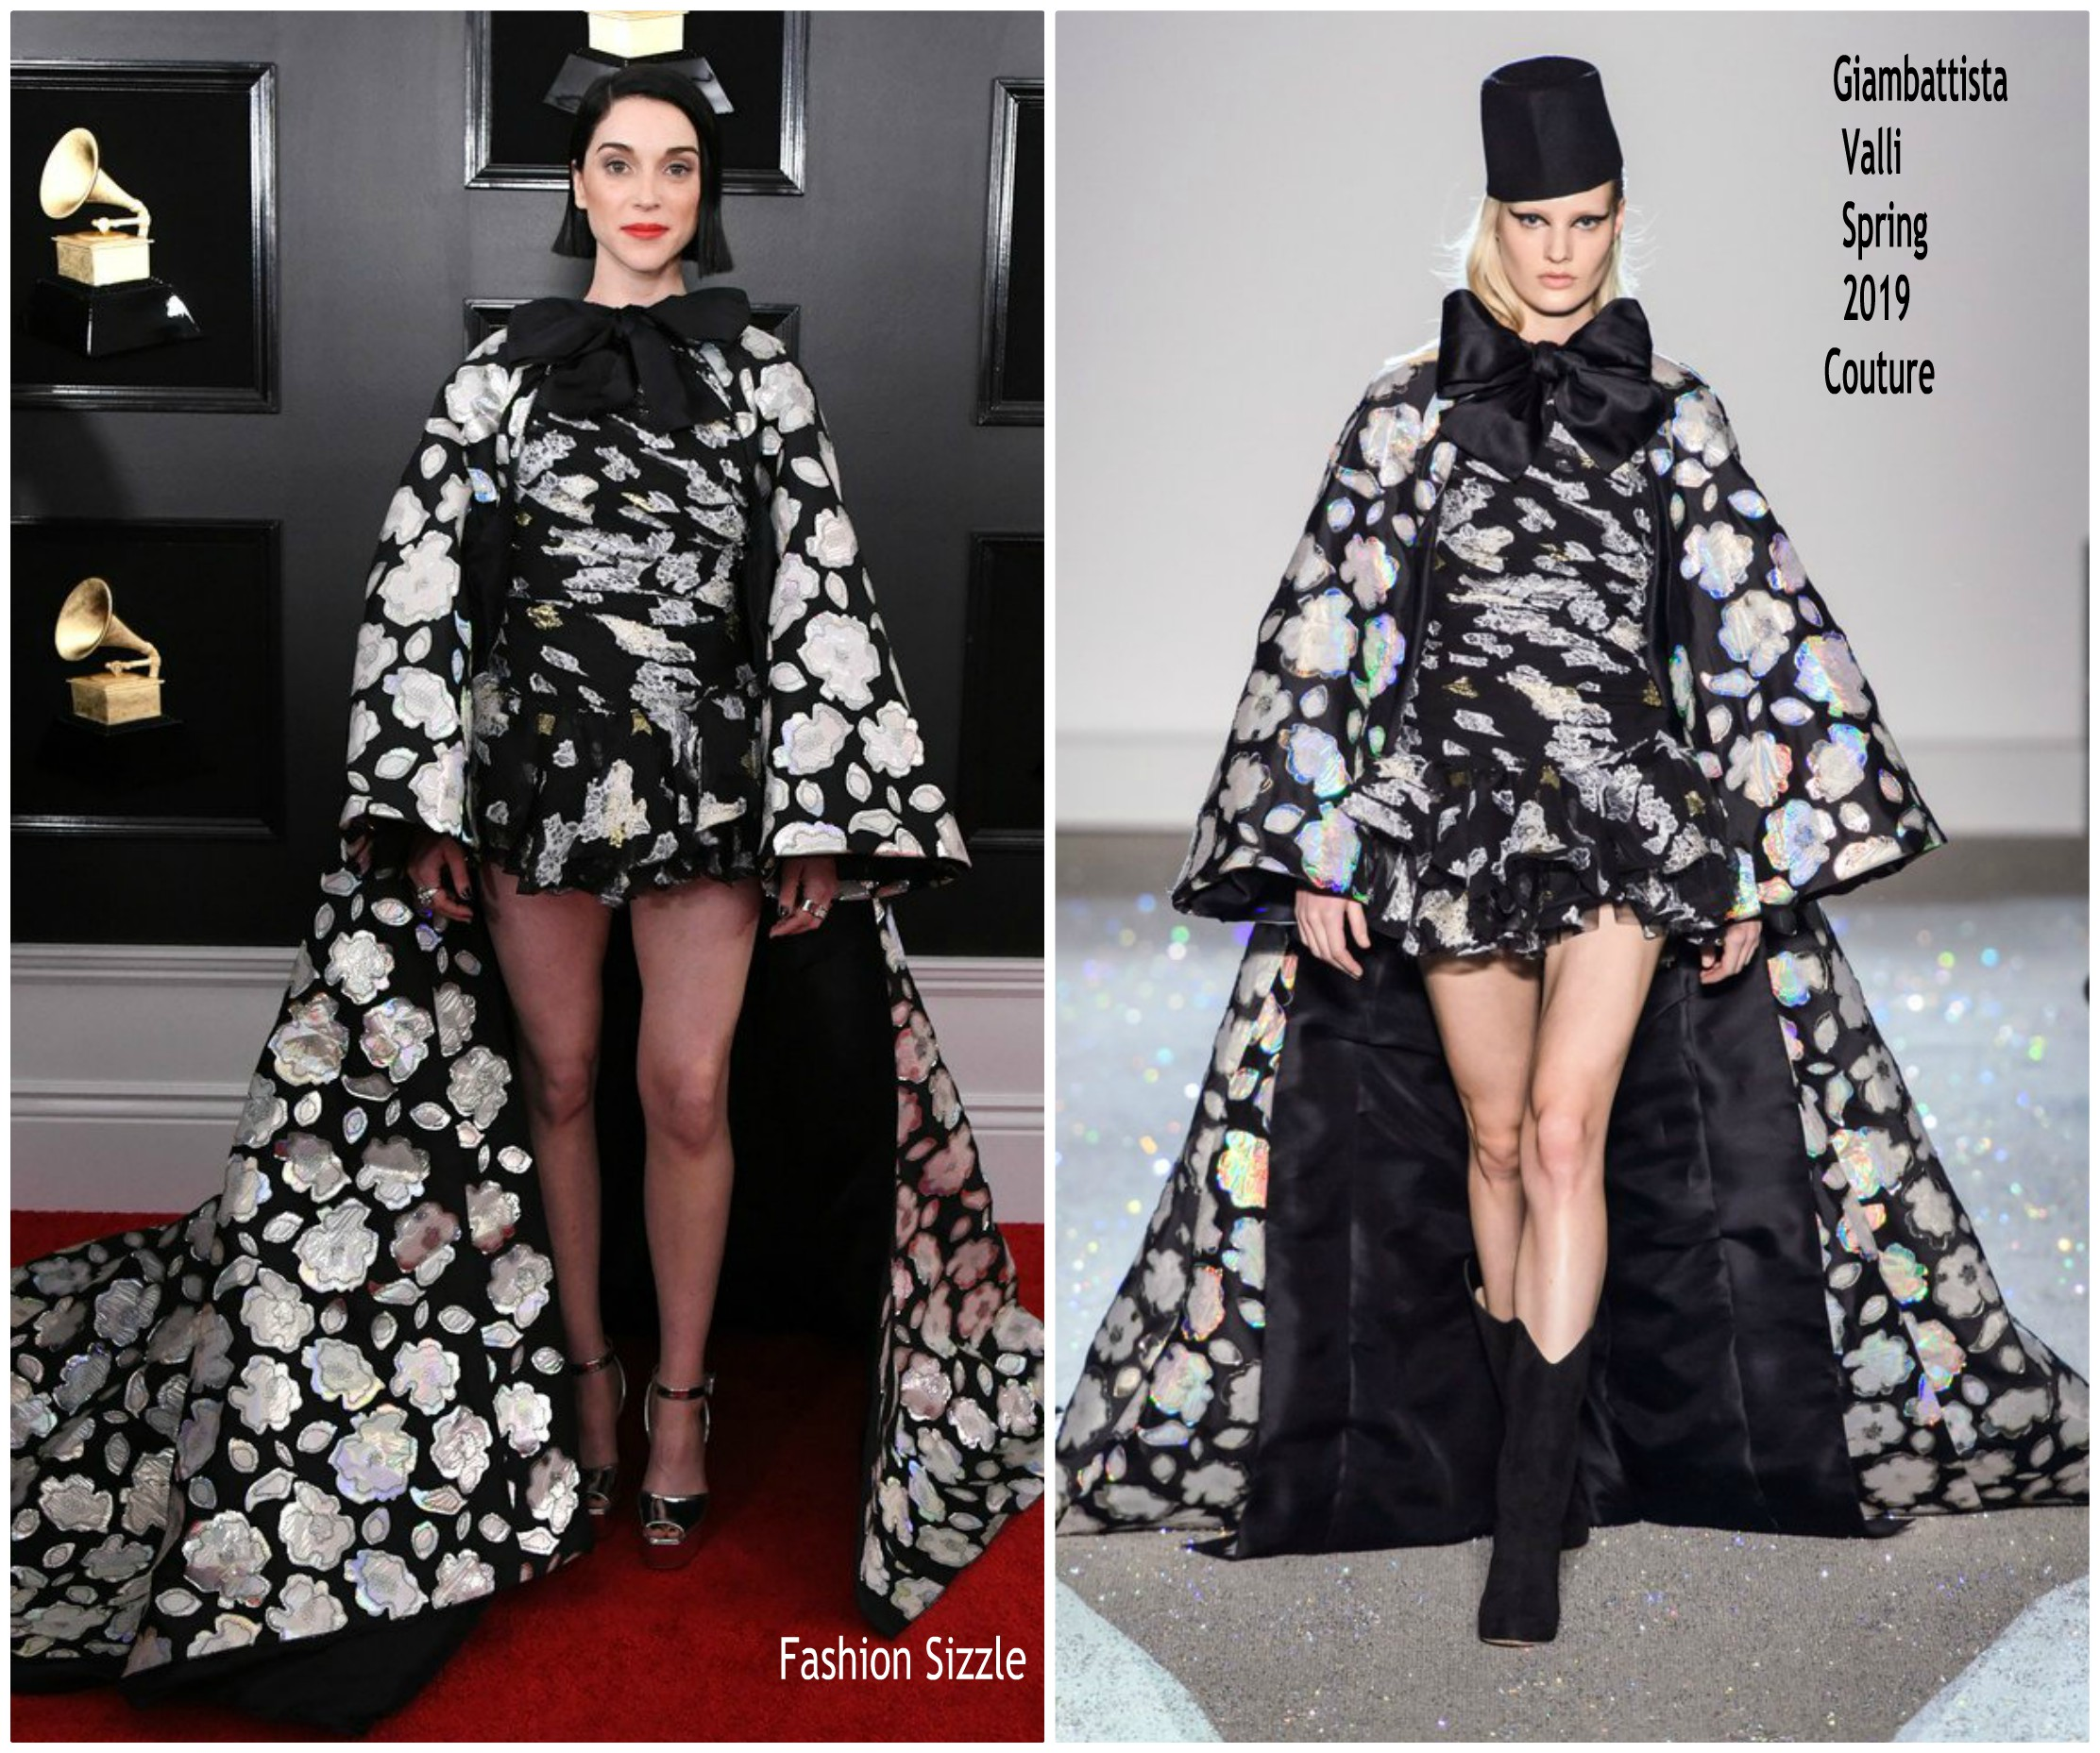 st-vincent-in-giambattista-valli-haute-couture-2019-grammy-awards